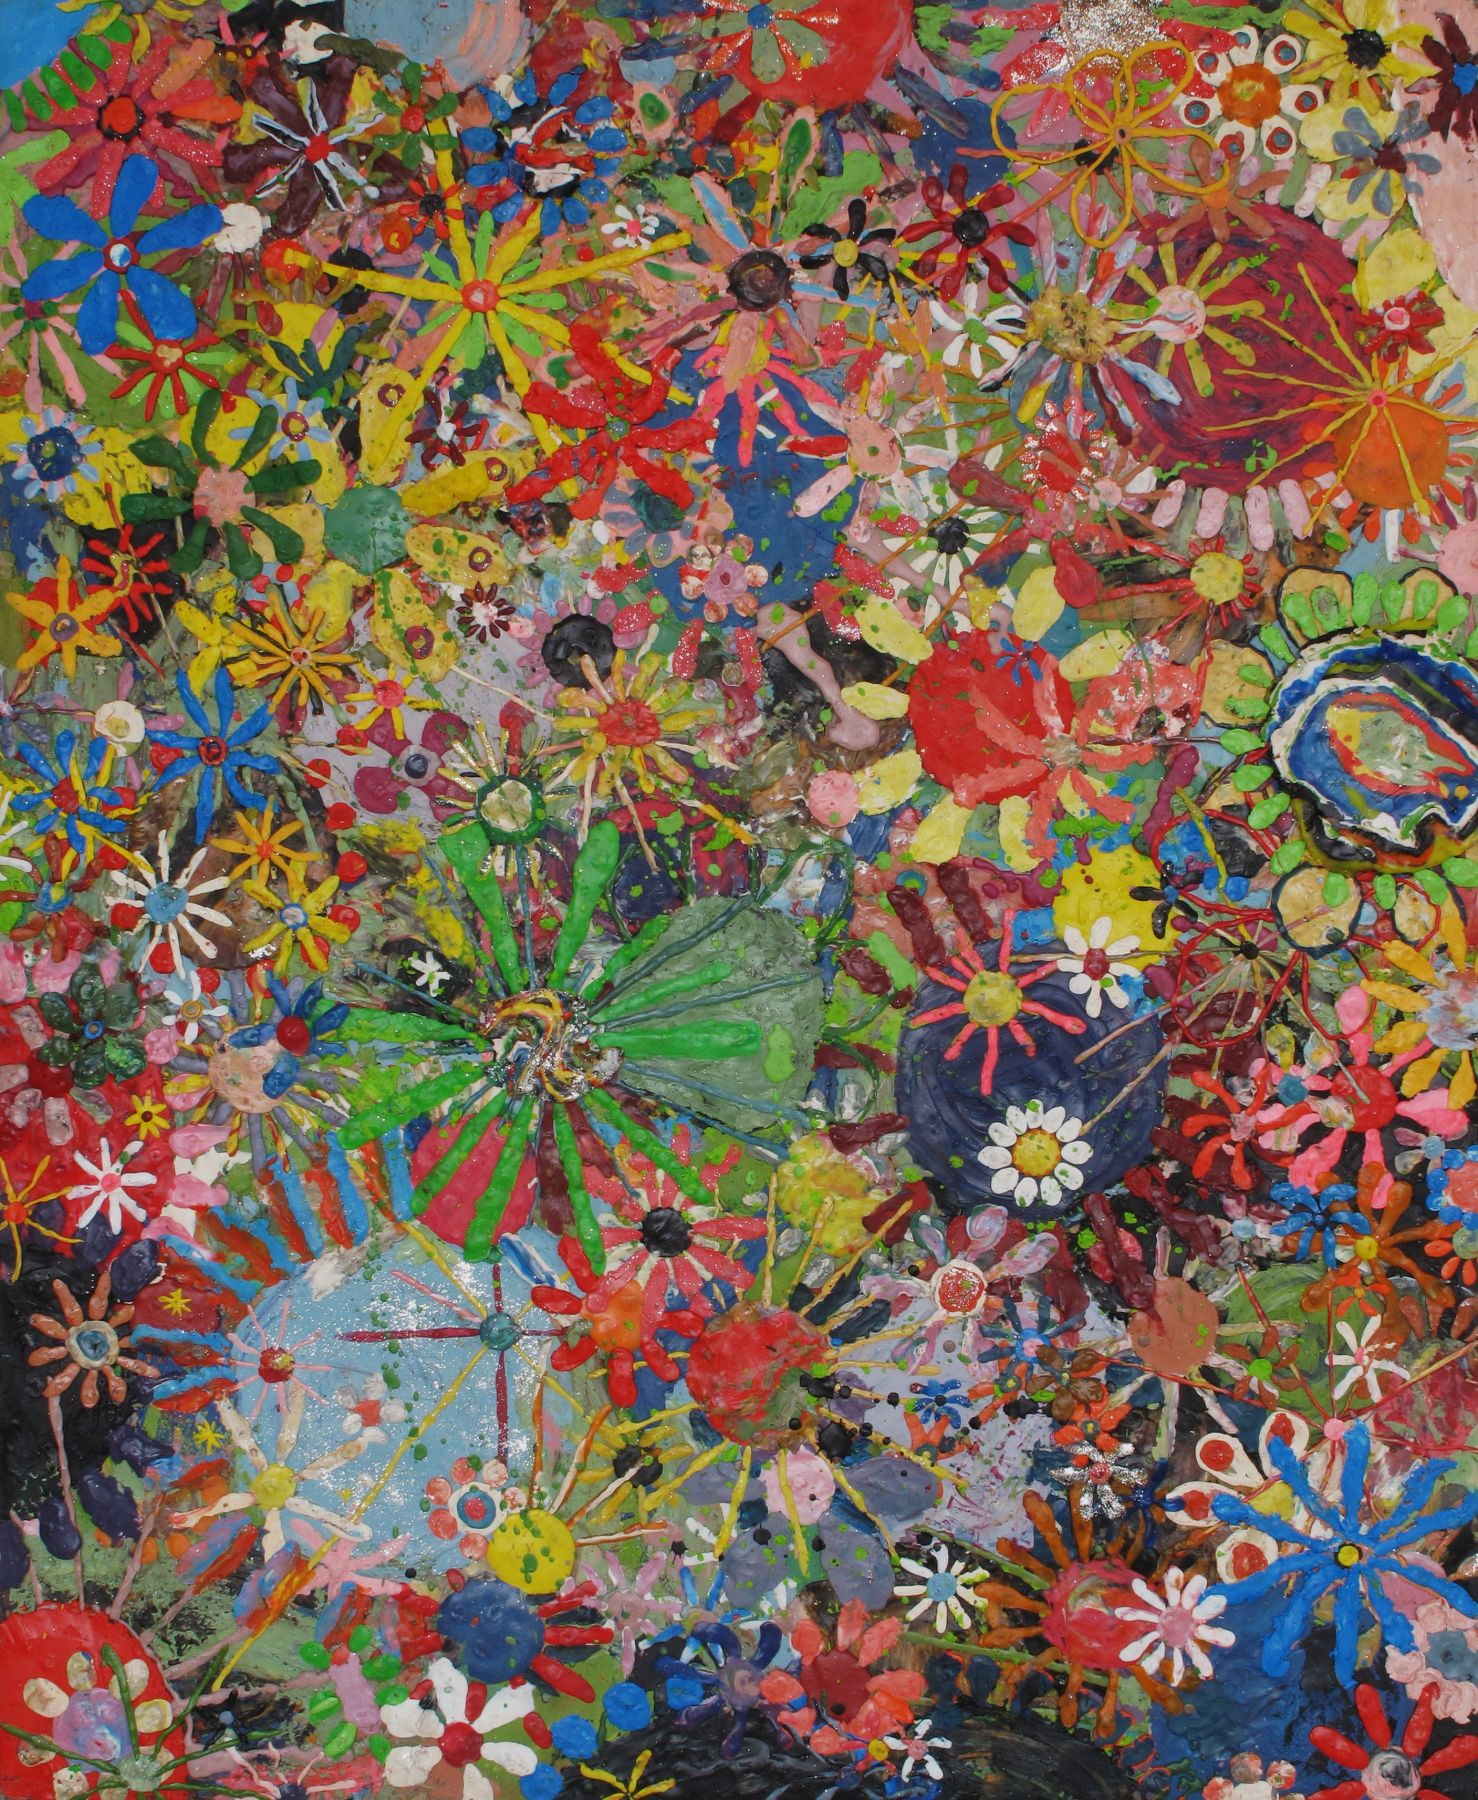 Flower painting, 2009, plasticine on wood panel, 49 1/2 x 40 1/2 x 3/4 inches